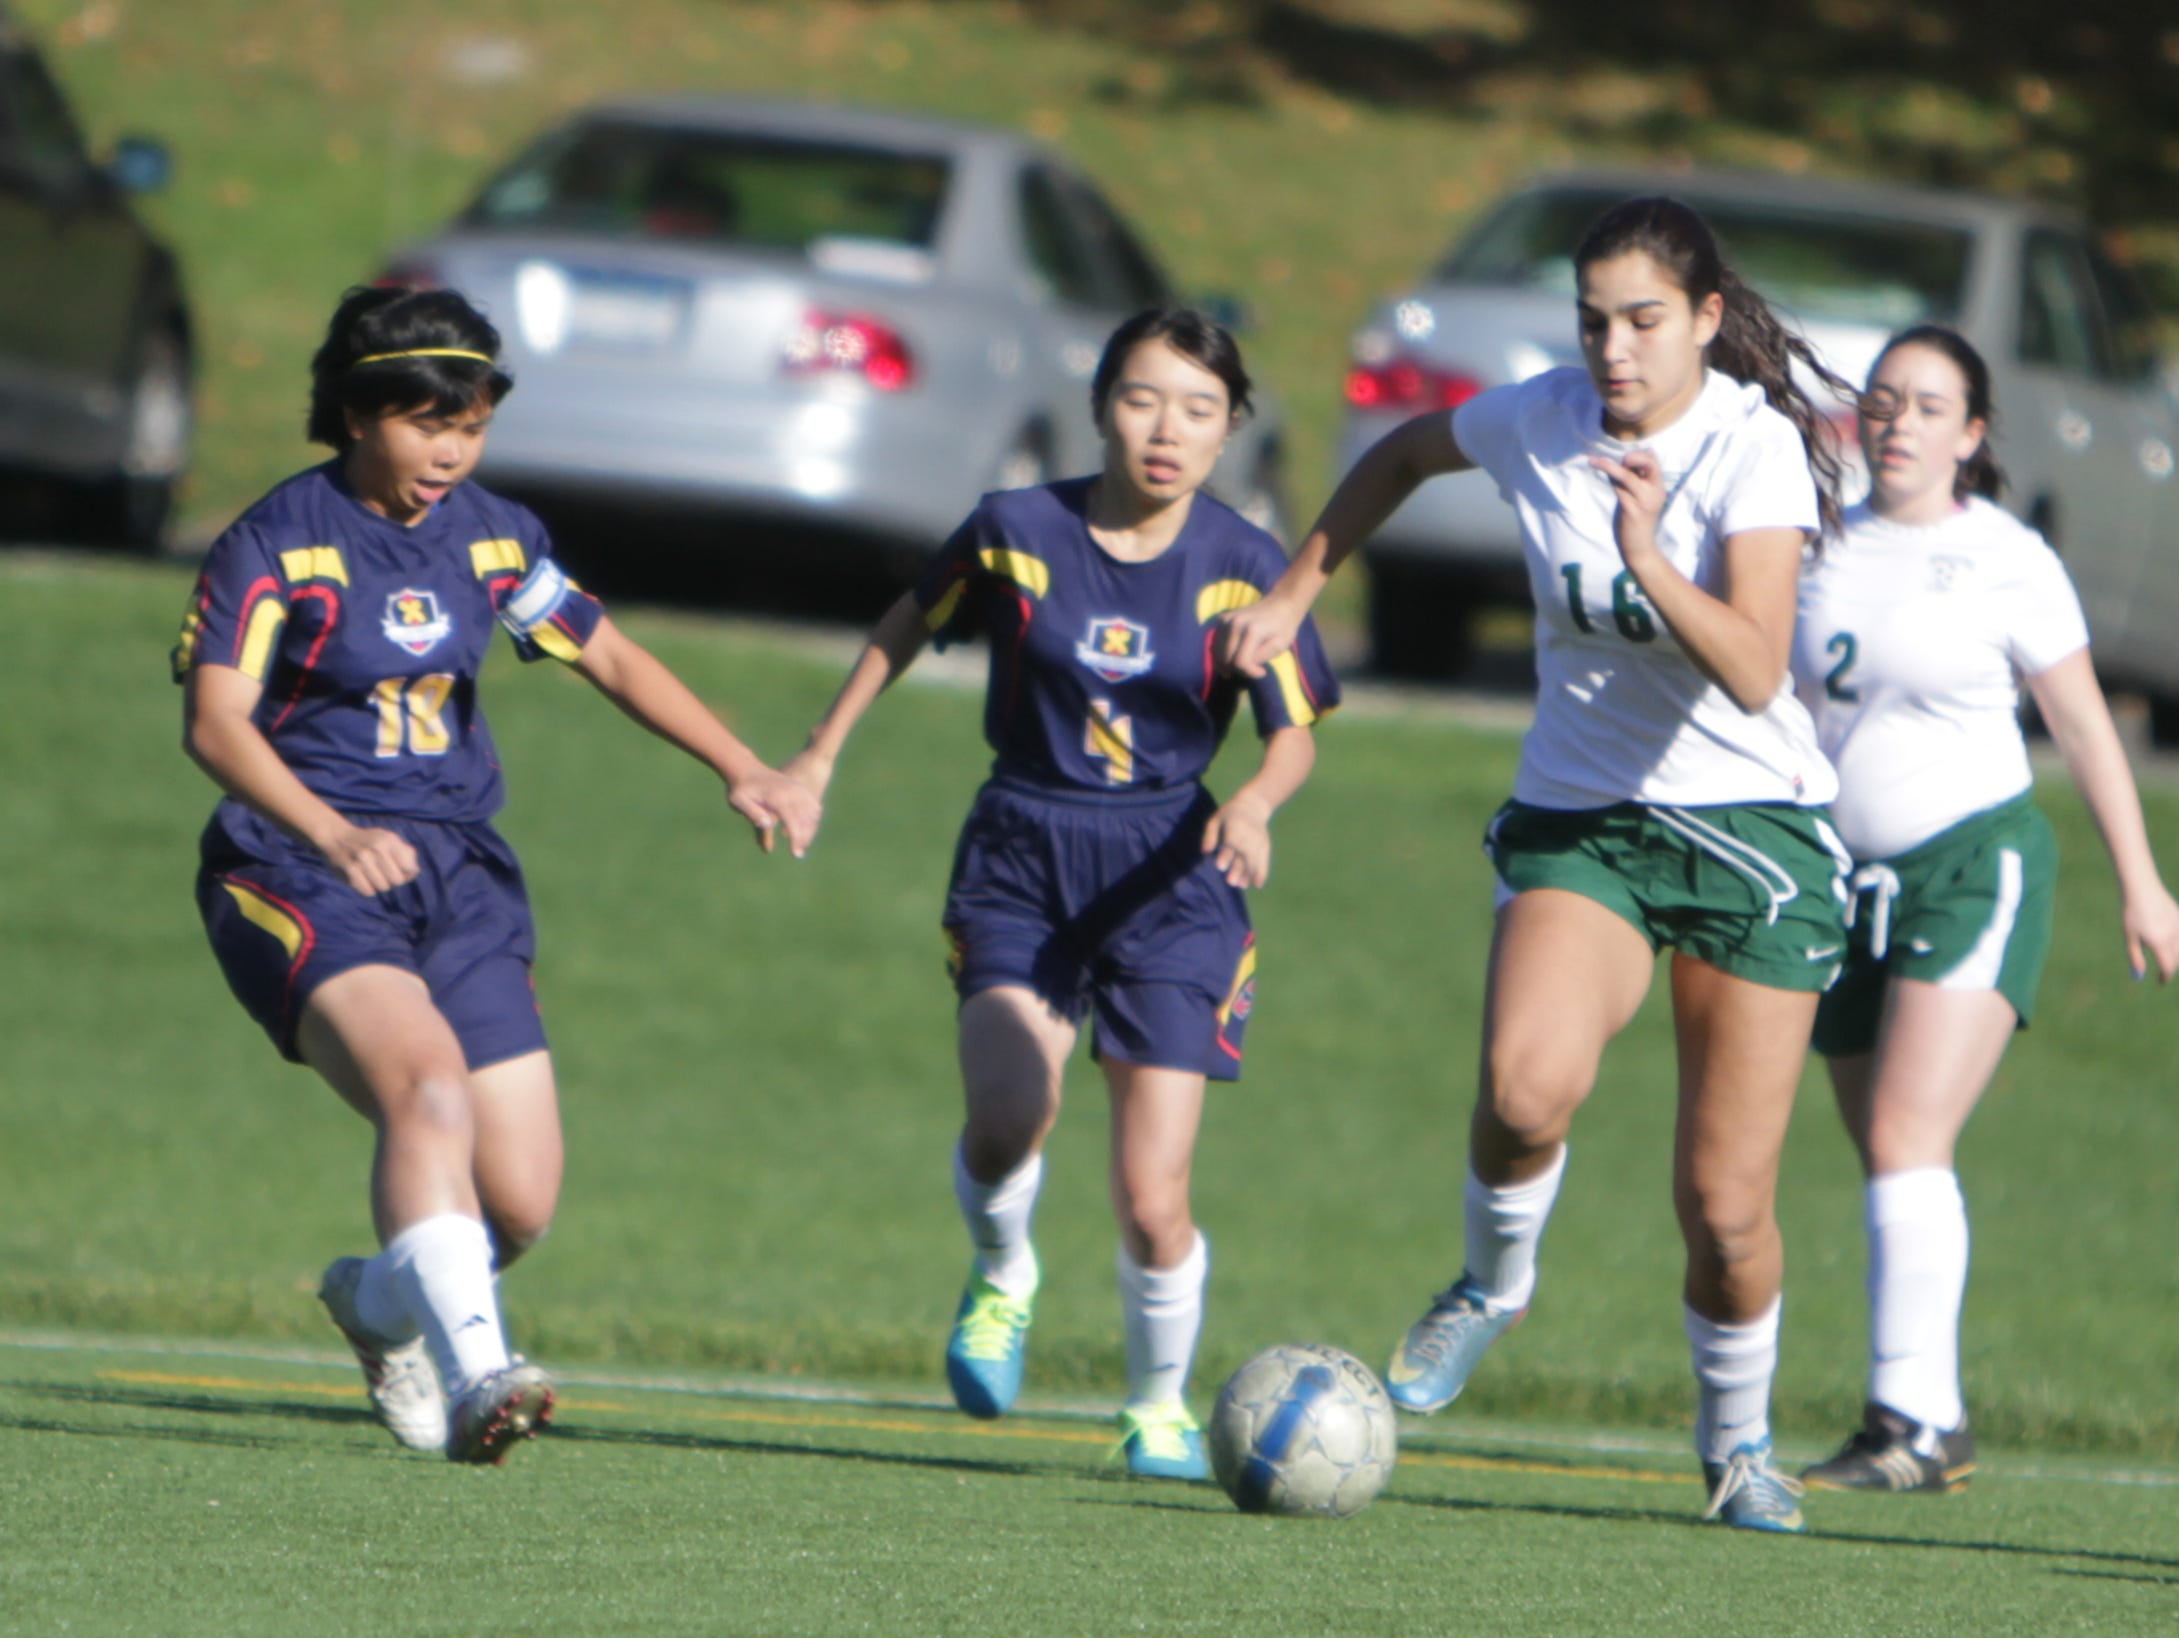 Solomon Schechter defeated Keio 9-2 in a Class C sectional quarterfinal game at Keio Academy, Purchase, on Monday, October 26th, 2015